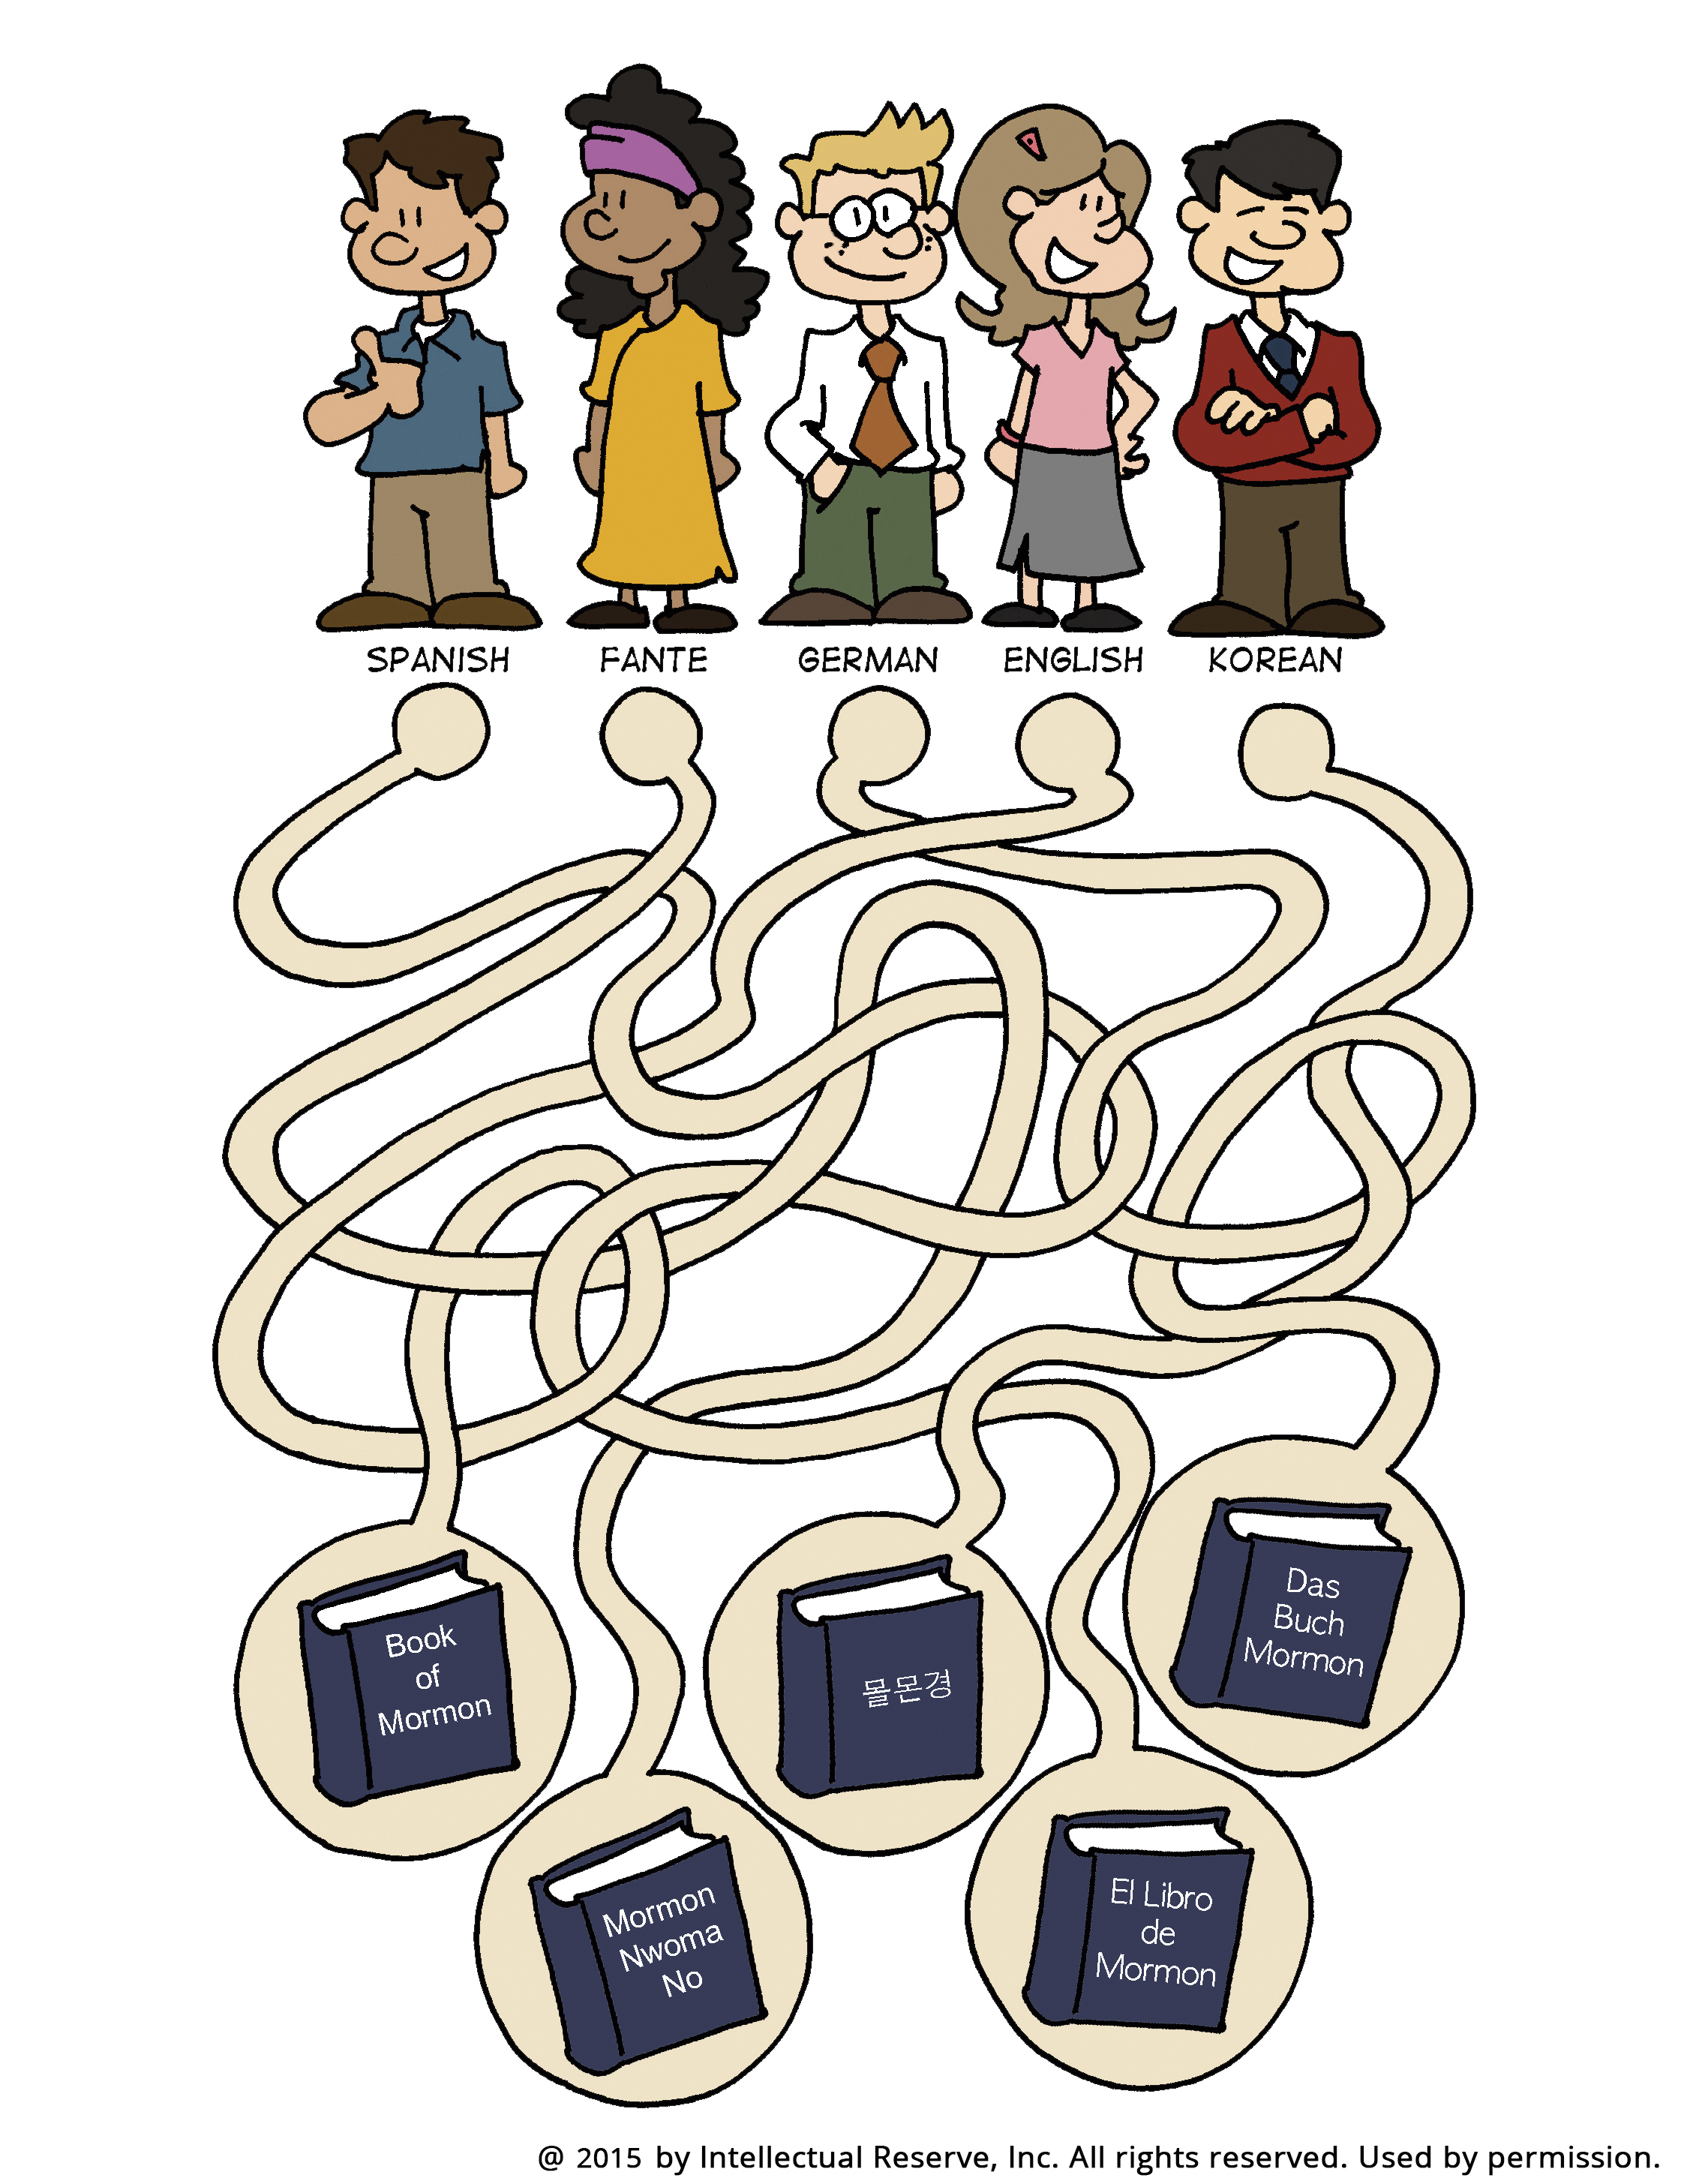 A maze starting with people who speak different languages and leading to copies of the Book of Mormon in their languages.